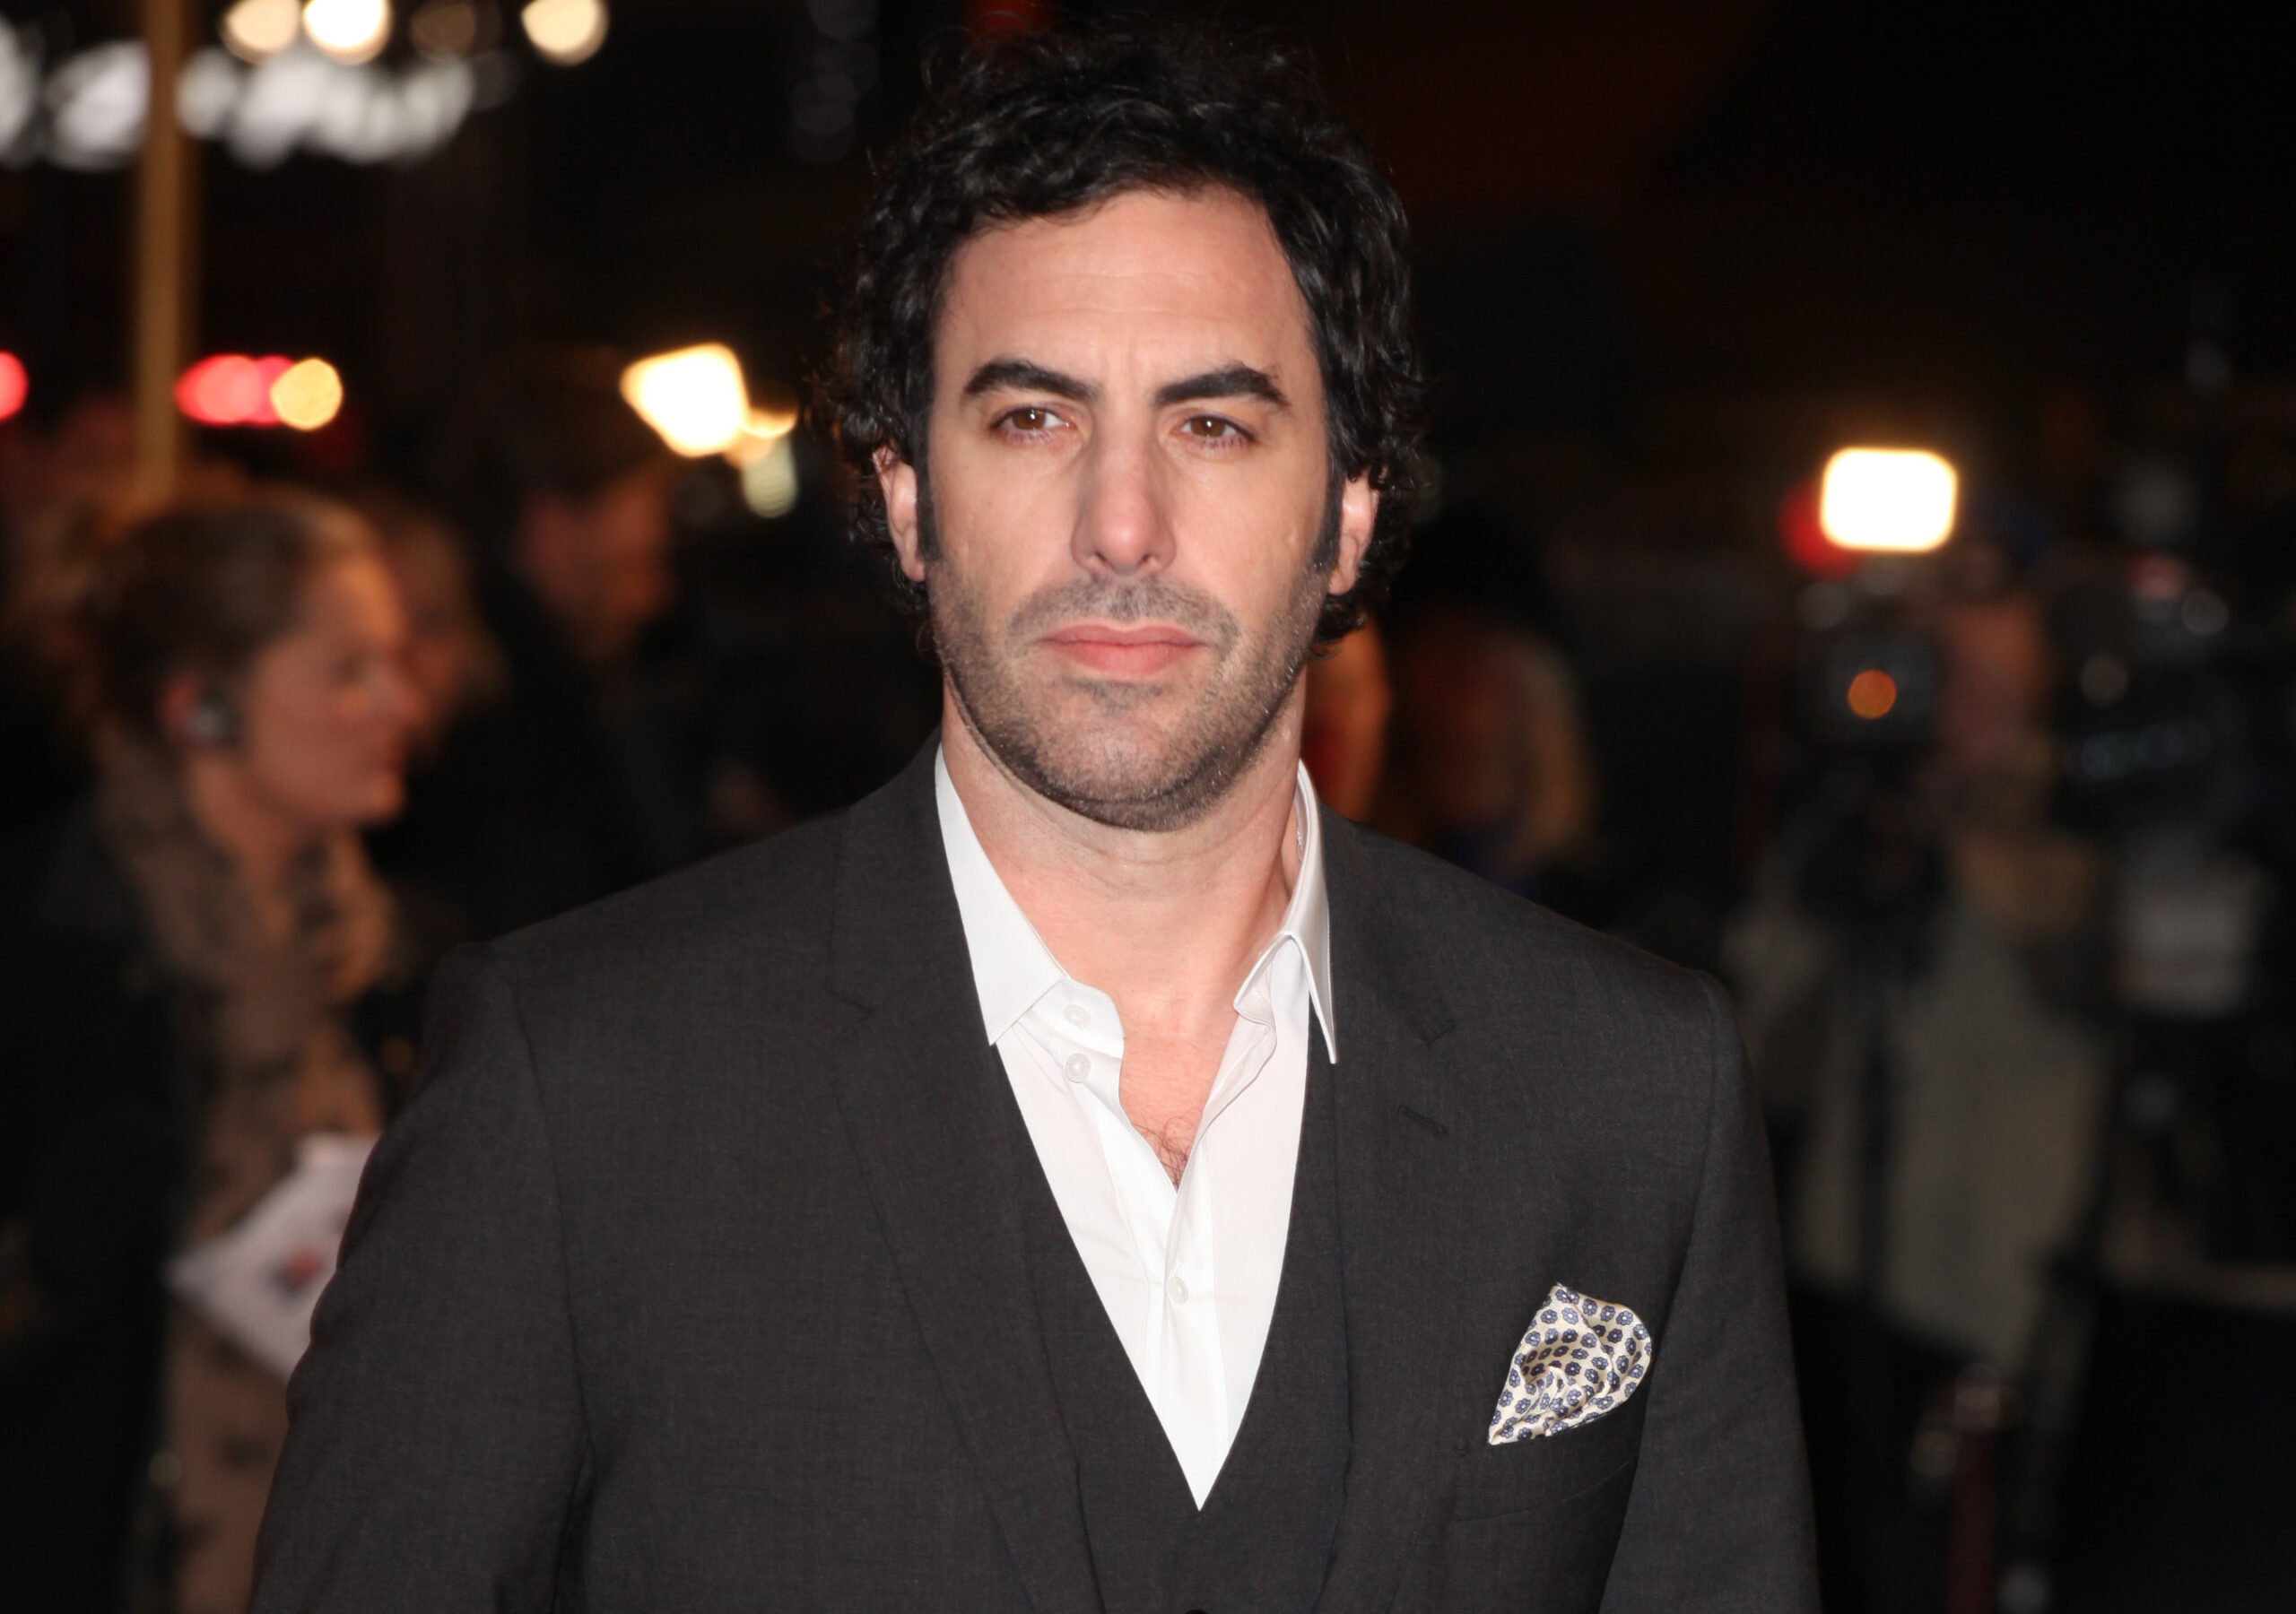 Sacha Baron Cohen facts